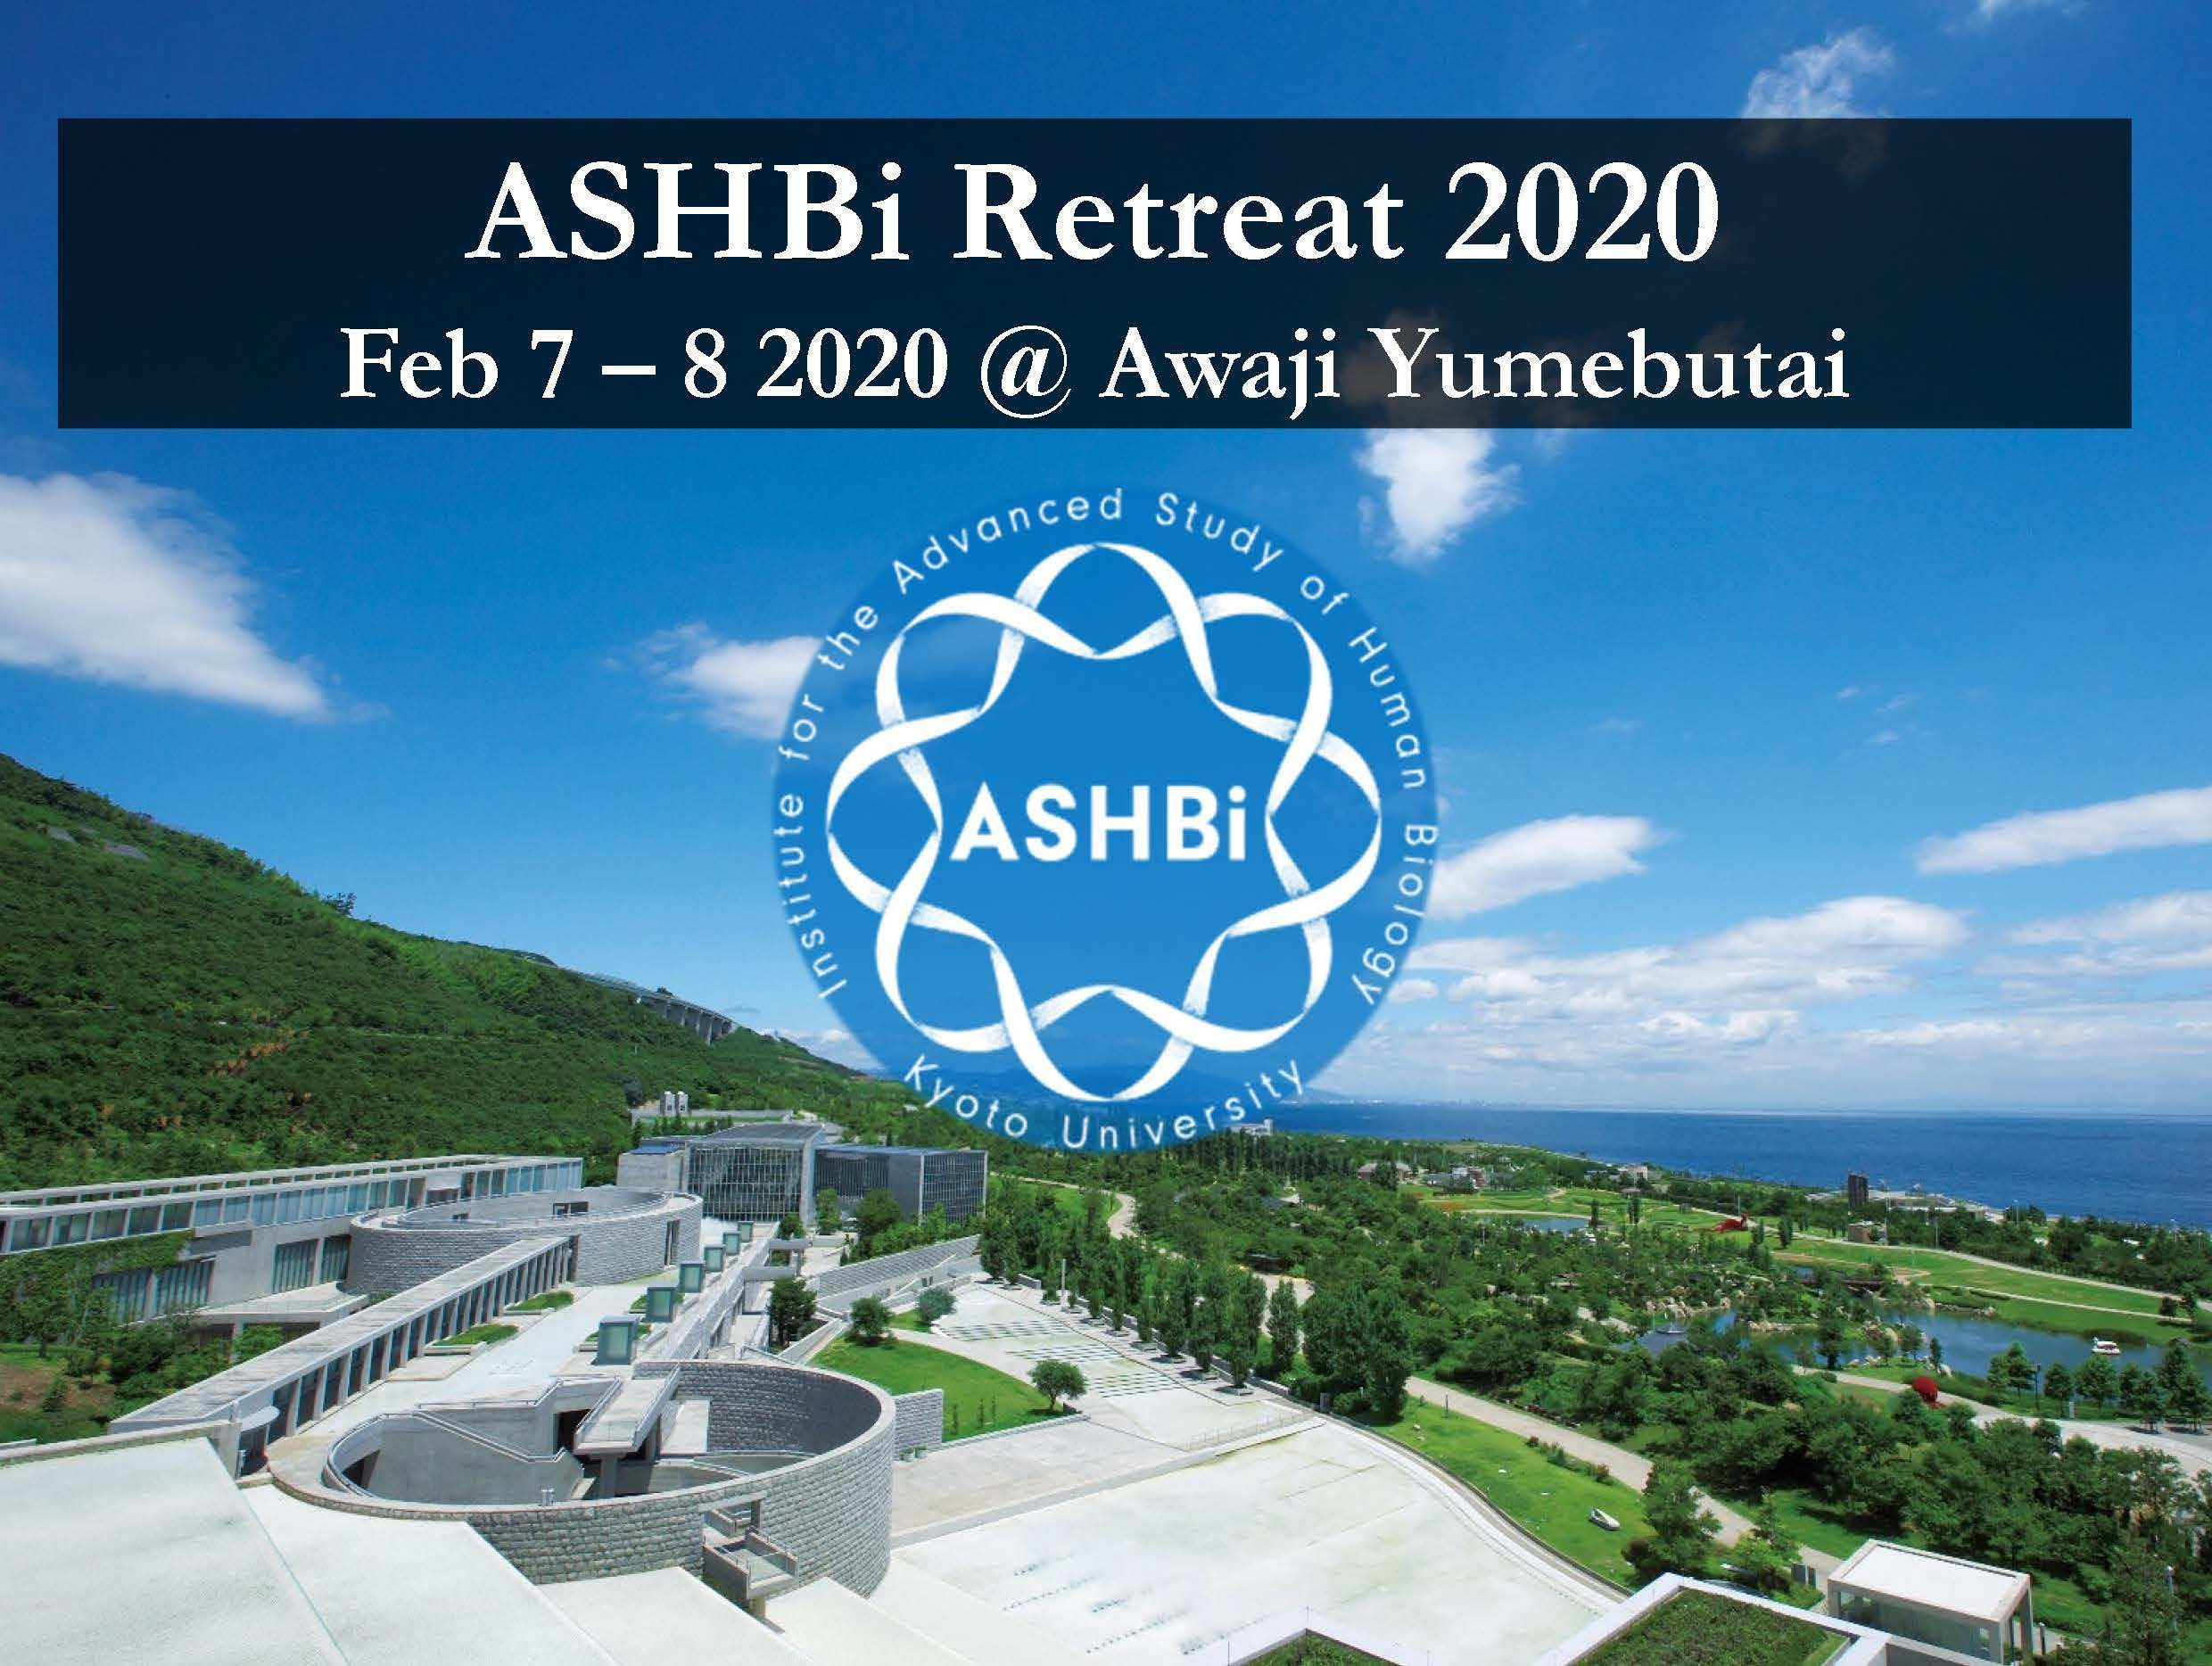 ASHBi Retreat 2020